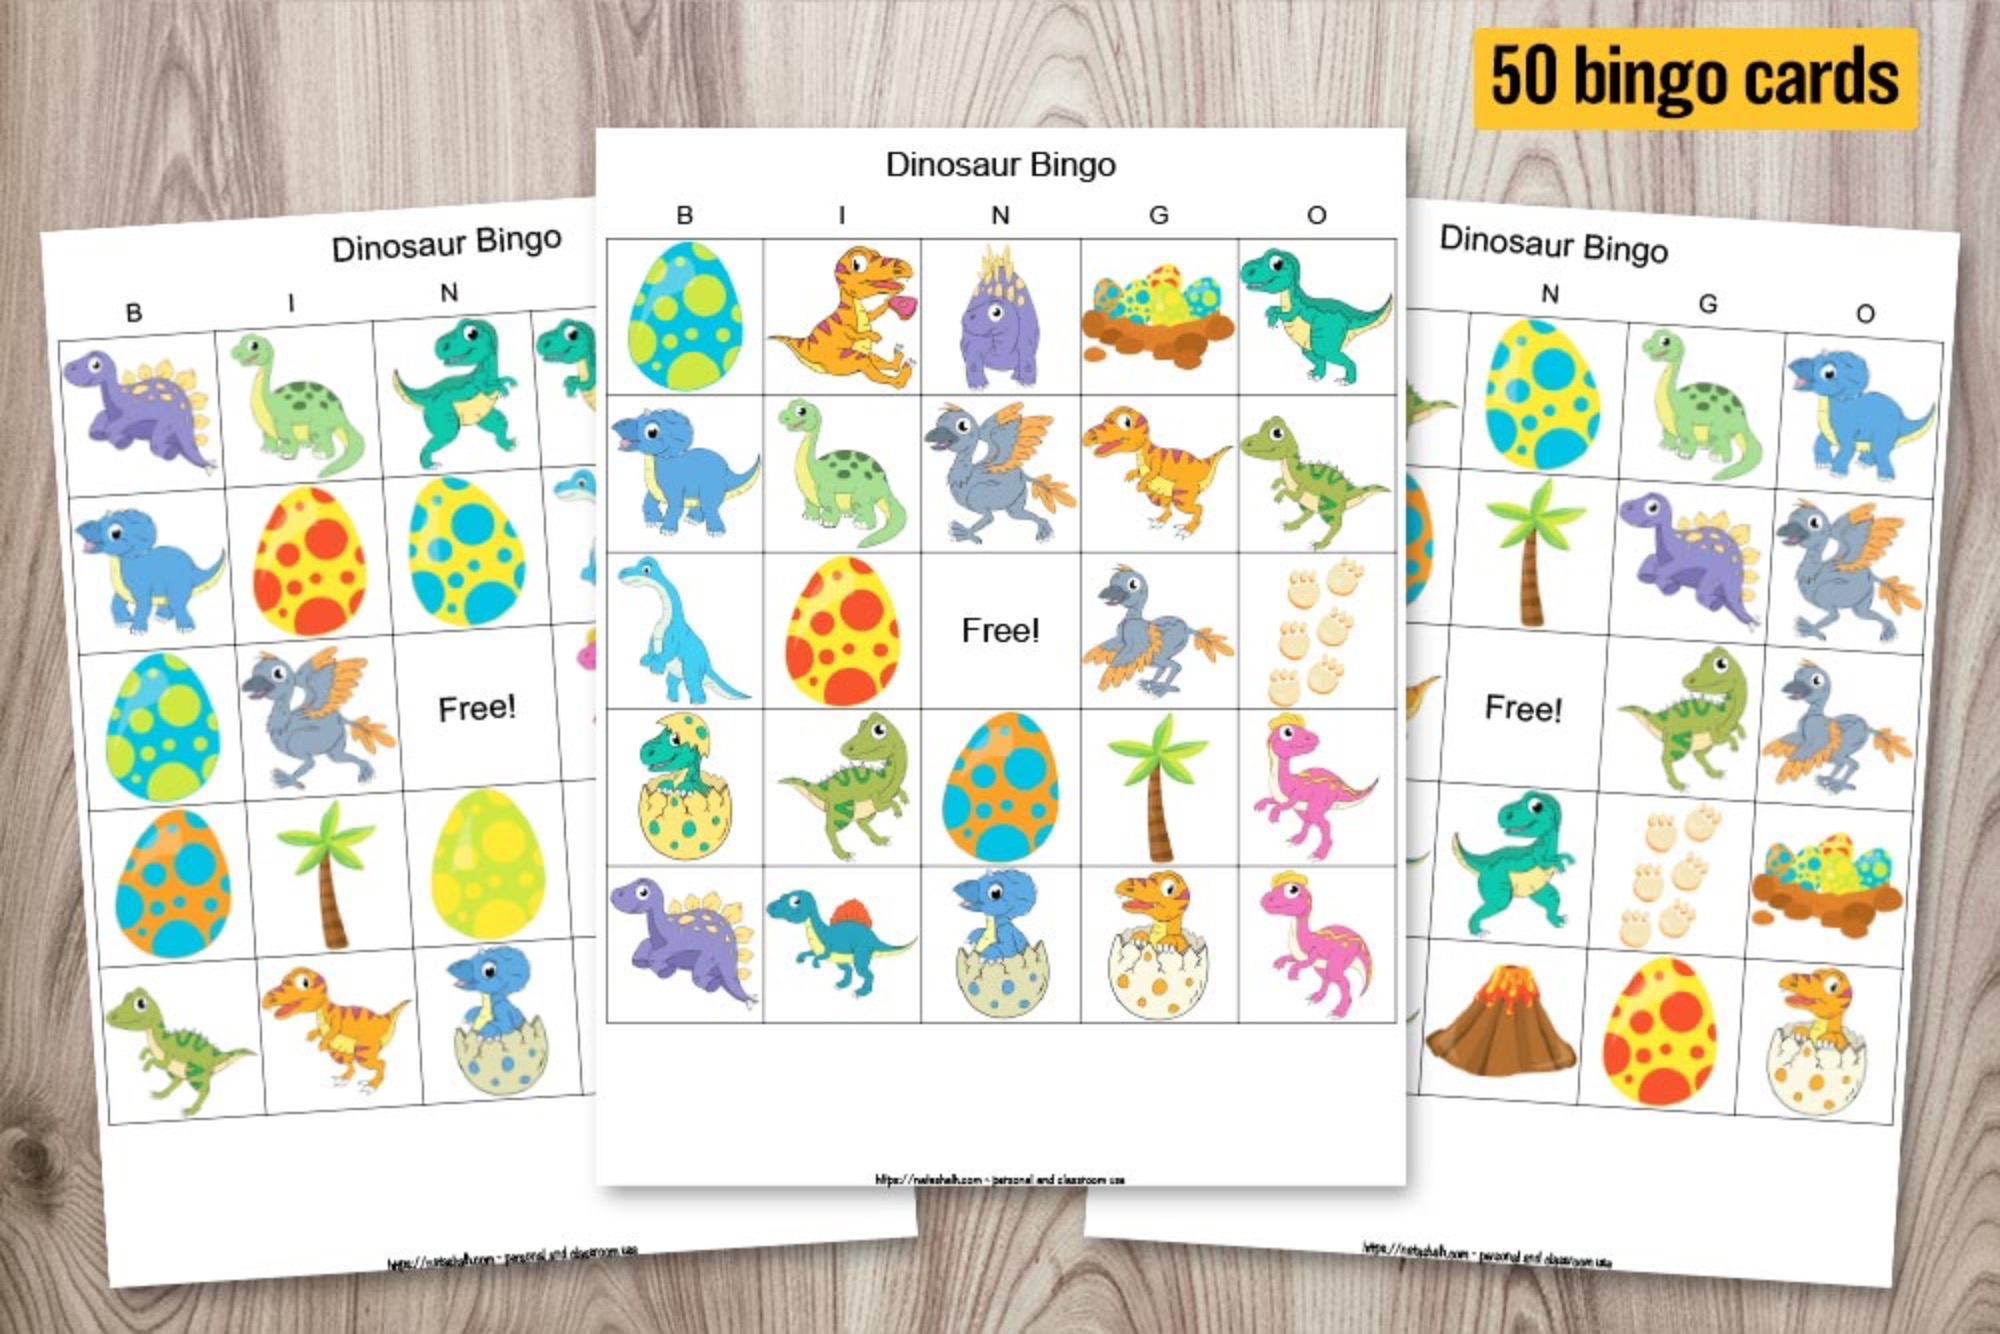 Dinosaur Bingo for Large Group (50 Cards)